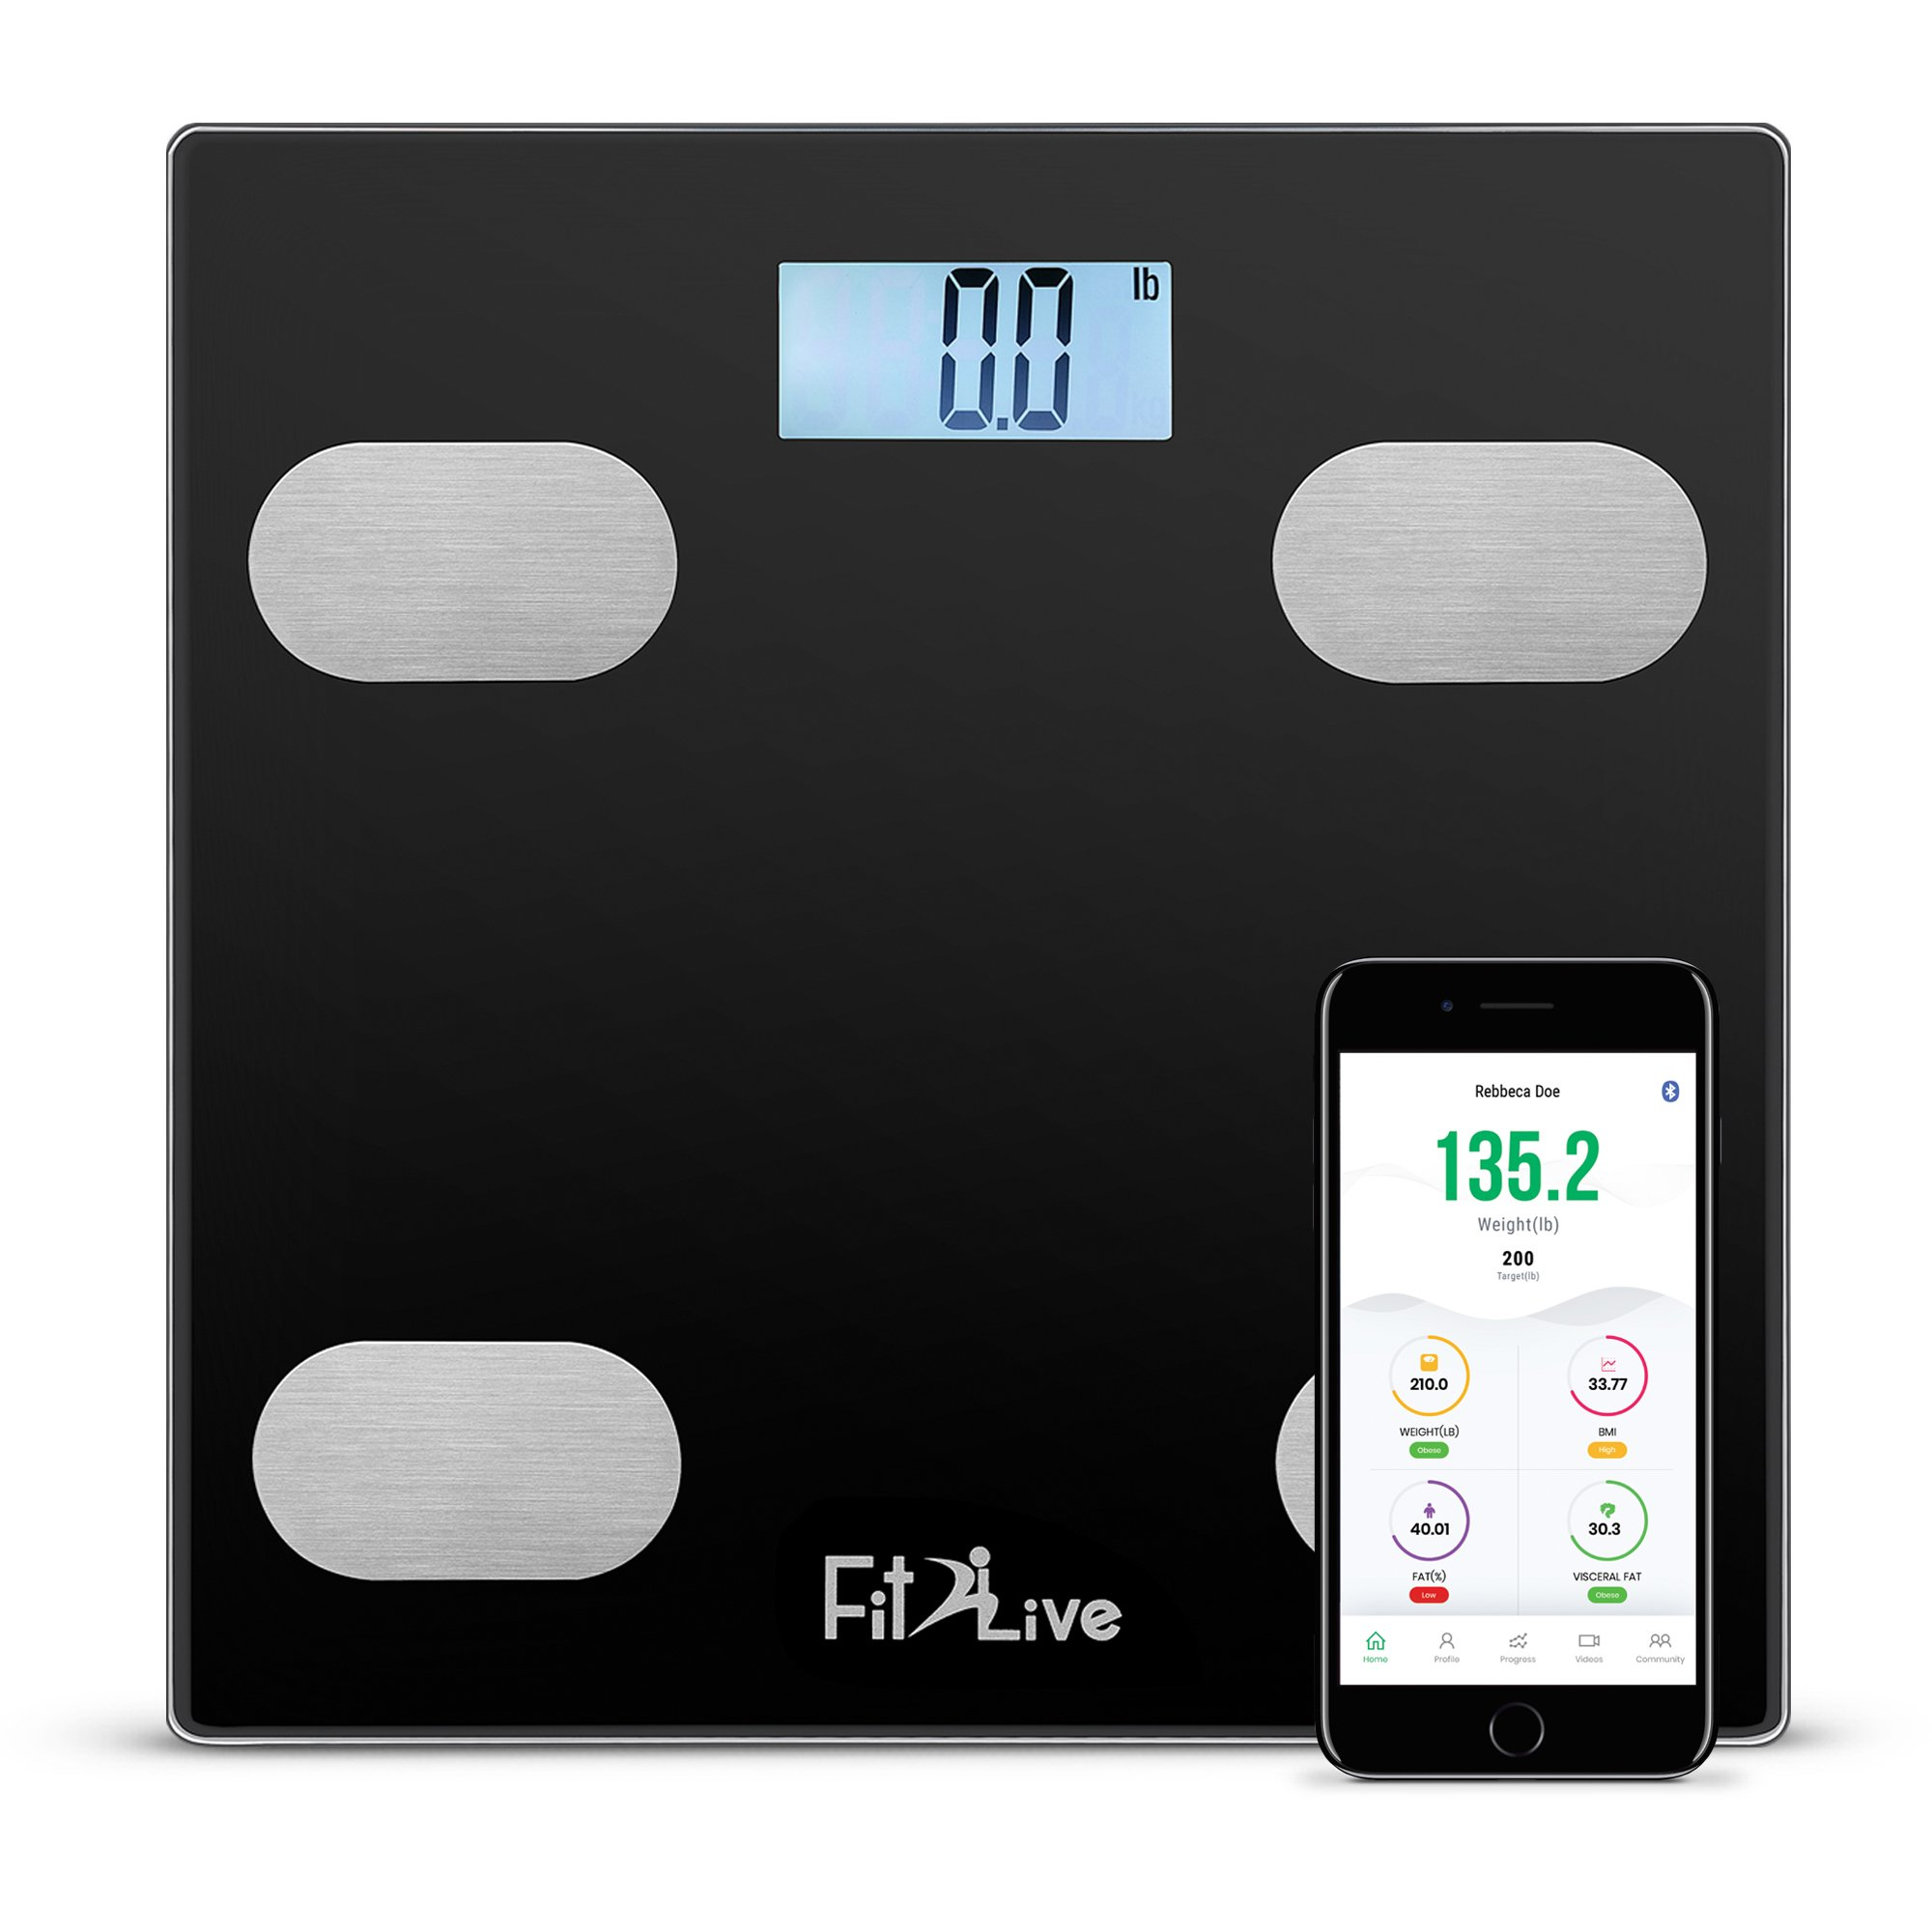 Bluetooth Smart Body Fat Scale, Fit2Live Digital Bathroom Weight Scale, Body Composition Analyzer, Connects with iOS and Android for Body Weight, Fat, Water, Bmi, Bmr, Muscle Mass, Black